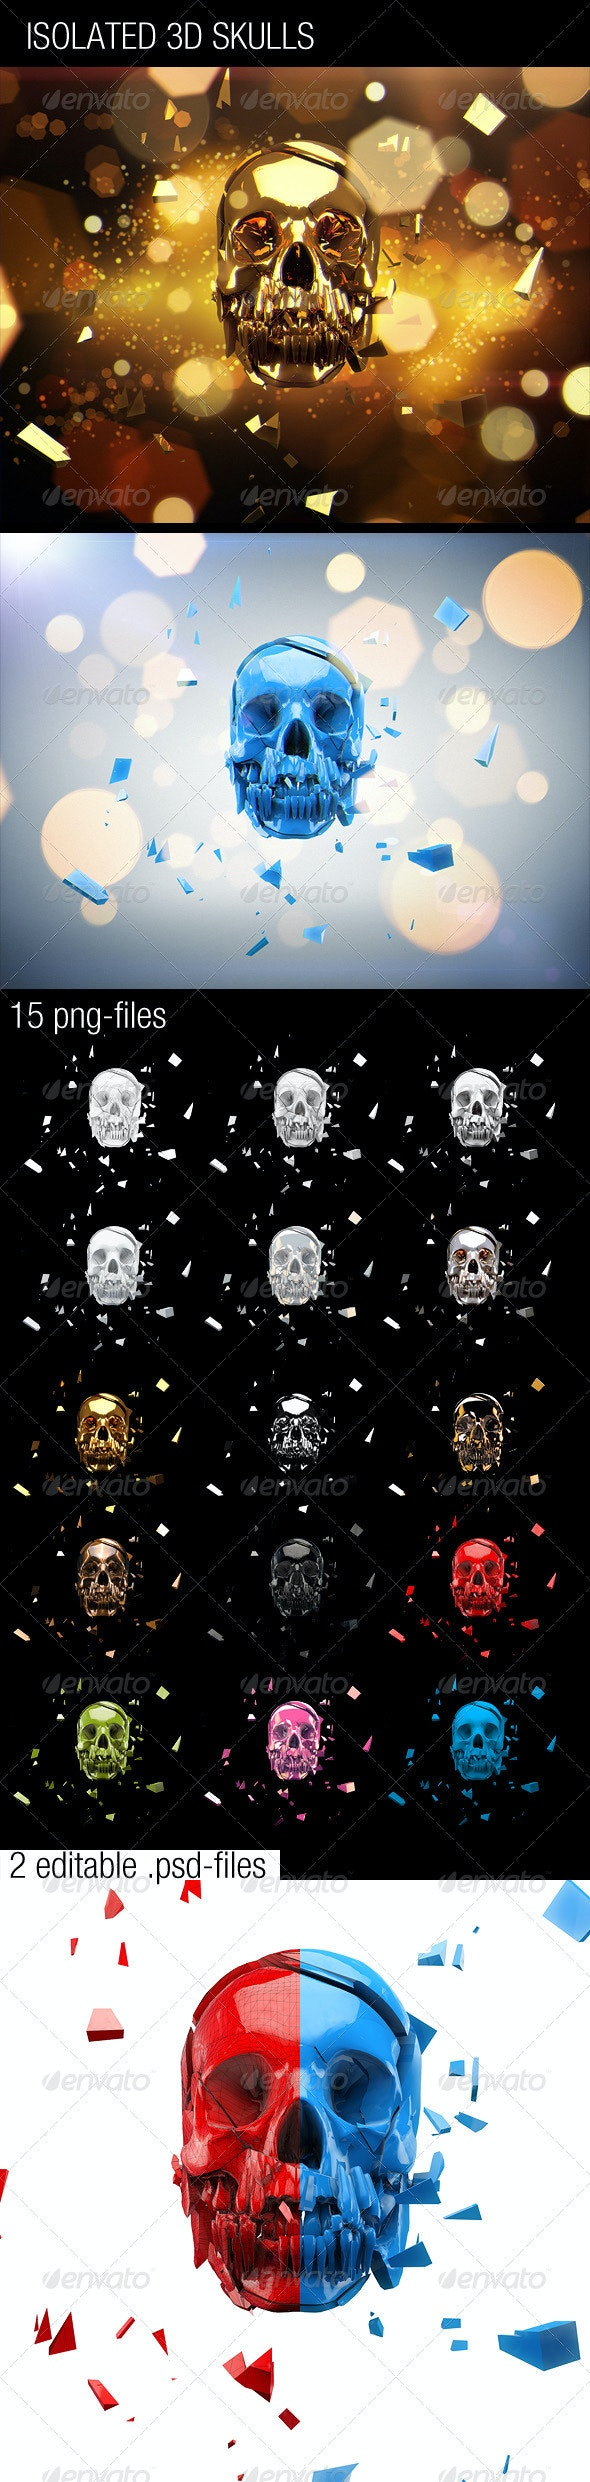 15 Isolated 3D Skulls - Objects 3D Renders